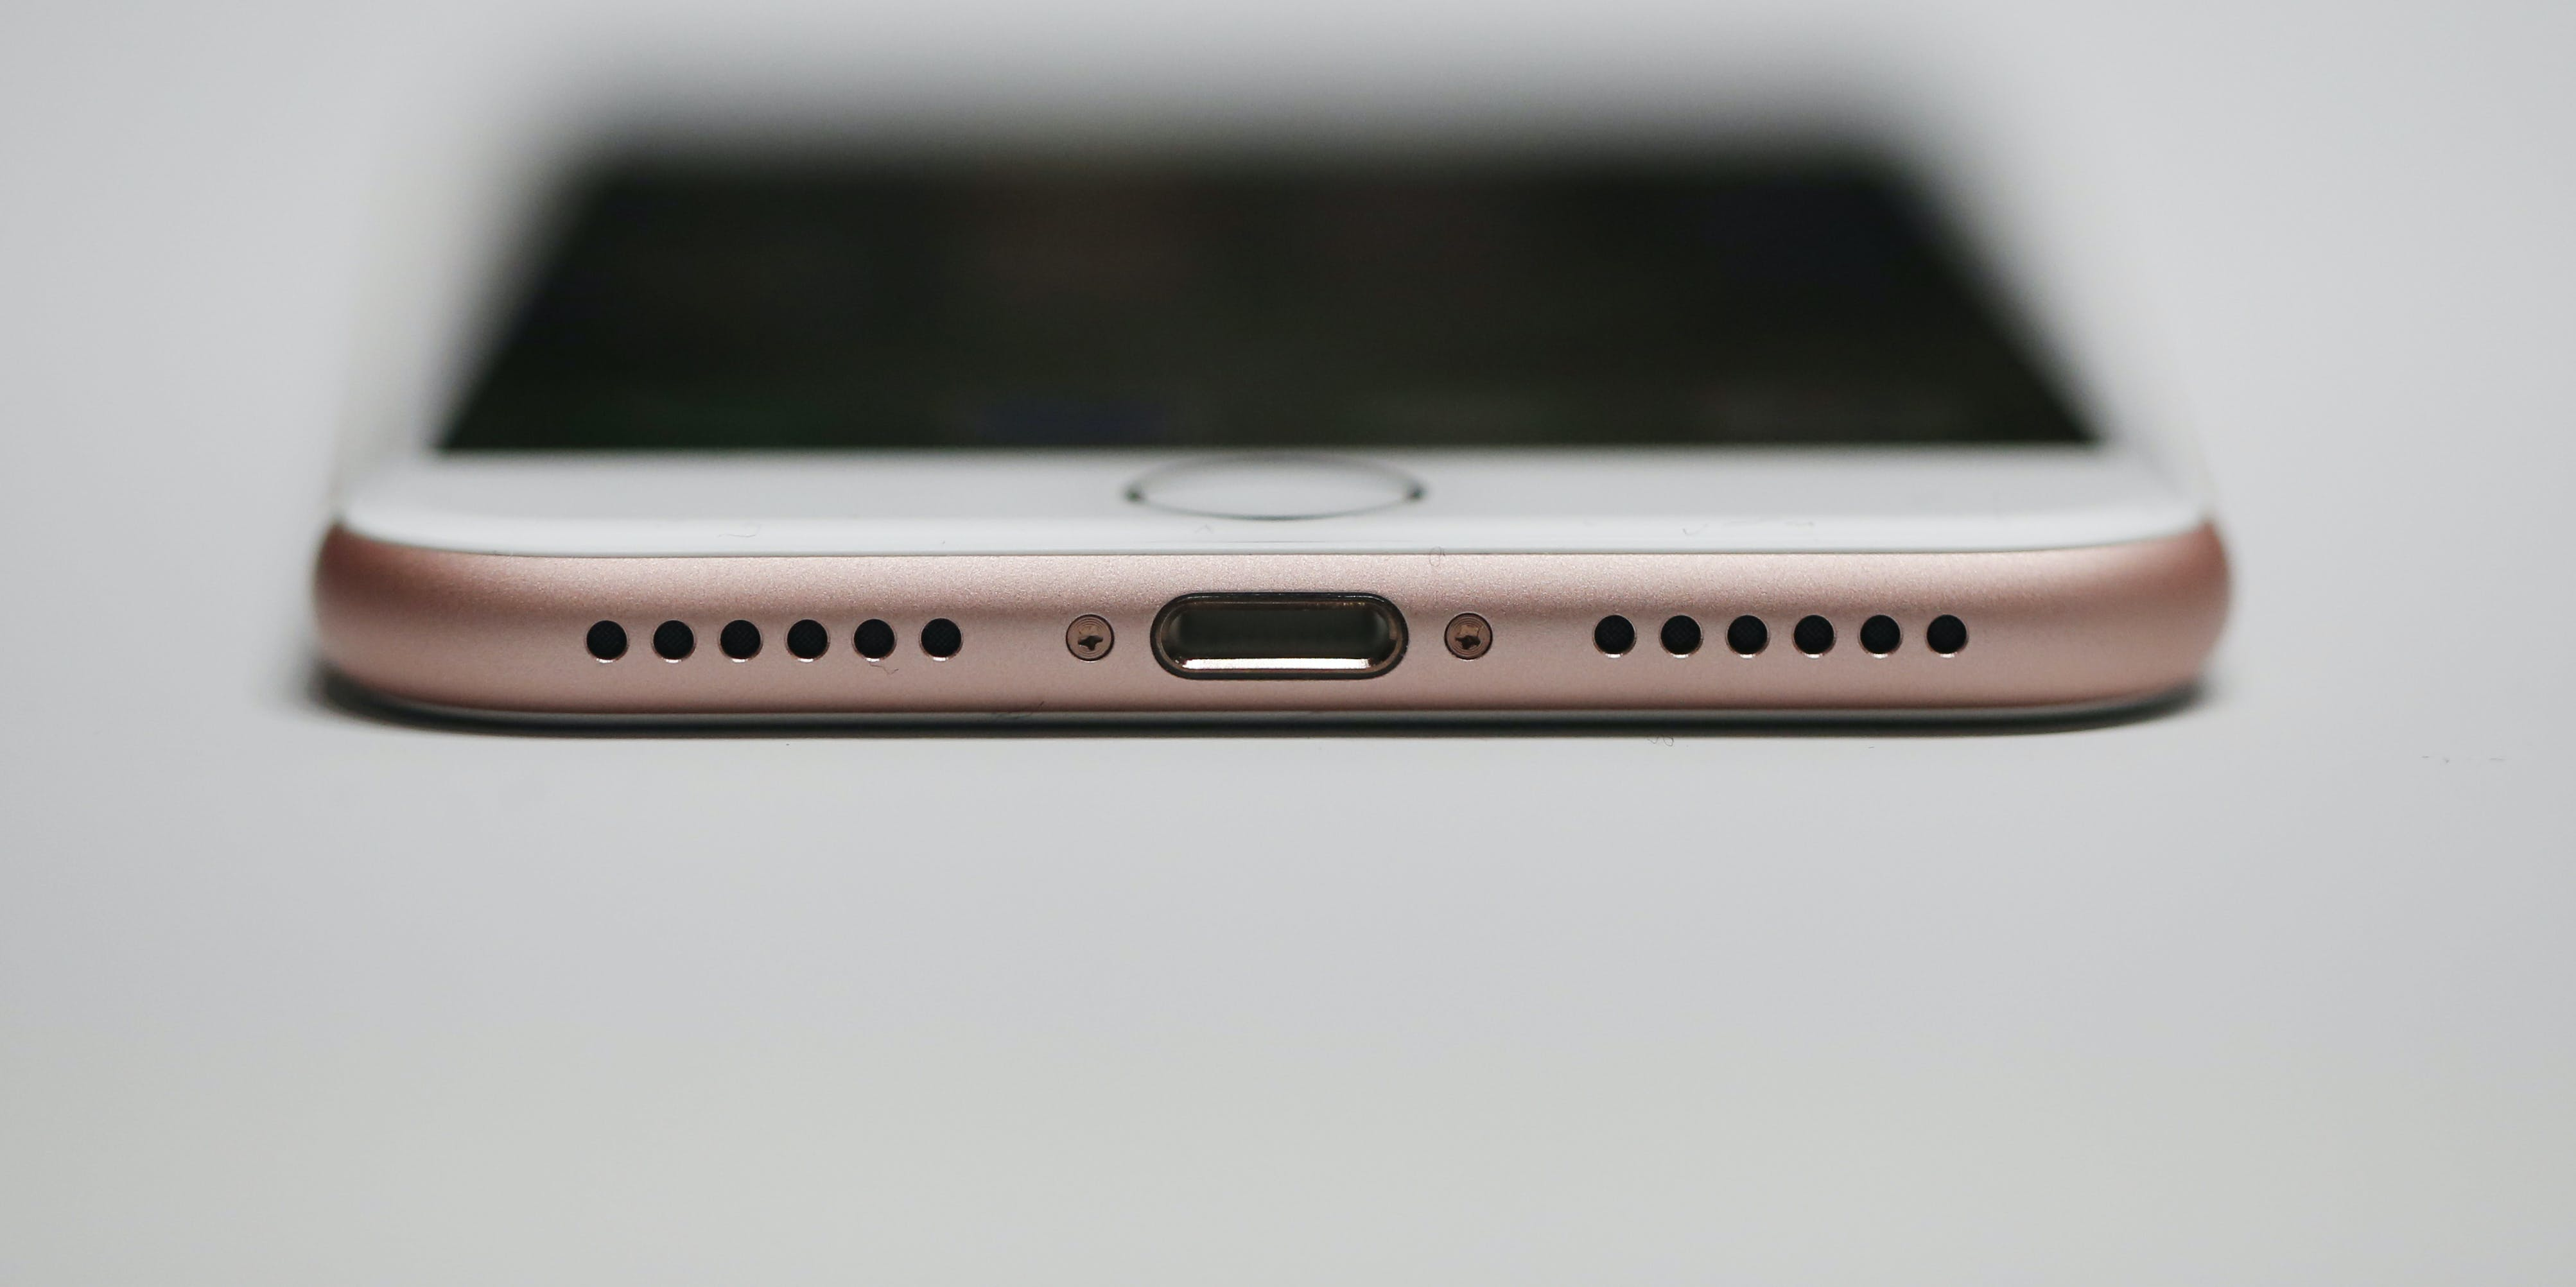 A new Apple iPhone 7 is seen during a launch event on September 7, 2016 in San Francisco, California. Apple Inc. unveiled the latest iterations of its smart phone, the iPhone 7 and 7 Plus, the Apple Watch Series 2, as well as AirPods, the tech giant's first wireless headphones.